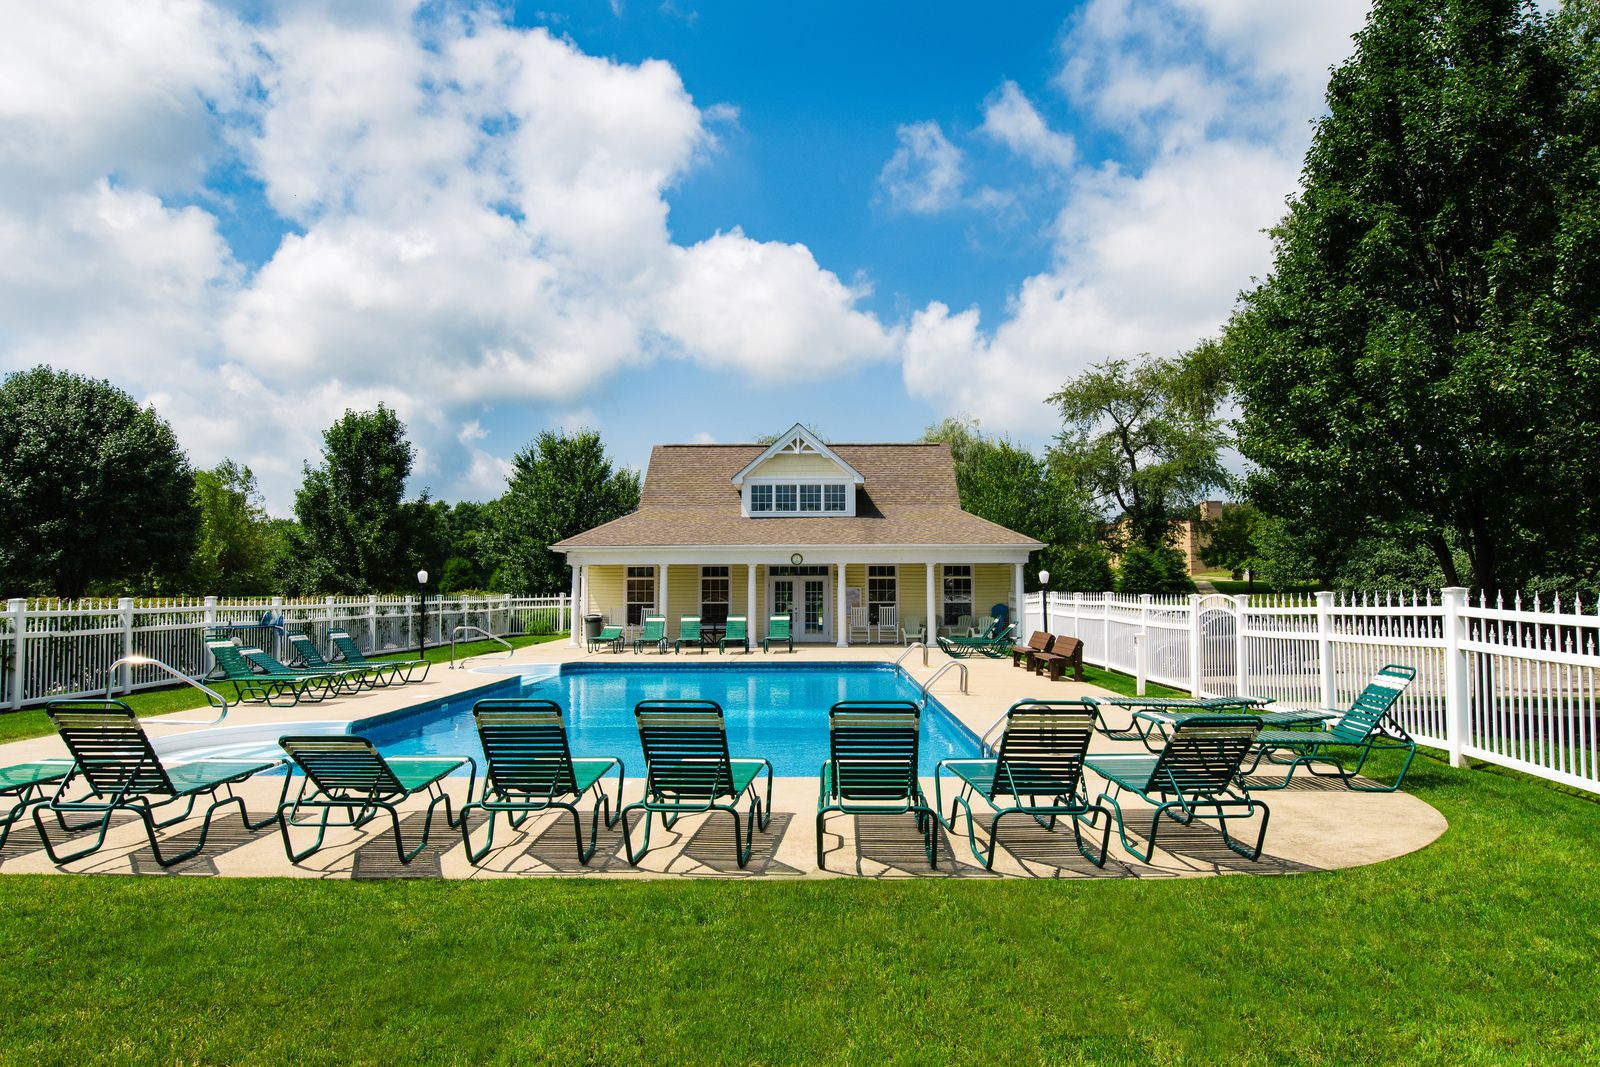 WELCOME HOME TO SARVER'S MILL:Enjoy outdoor living within your own neighborhood with multiple pools, clubhouses, playground, fishing pond and direct access to the Butler-Freeport walking trail.Learn more today!